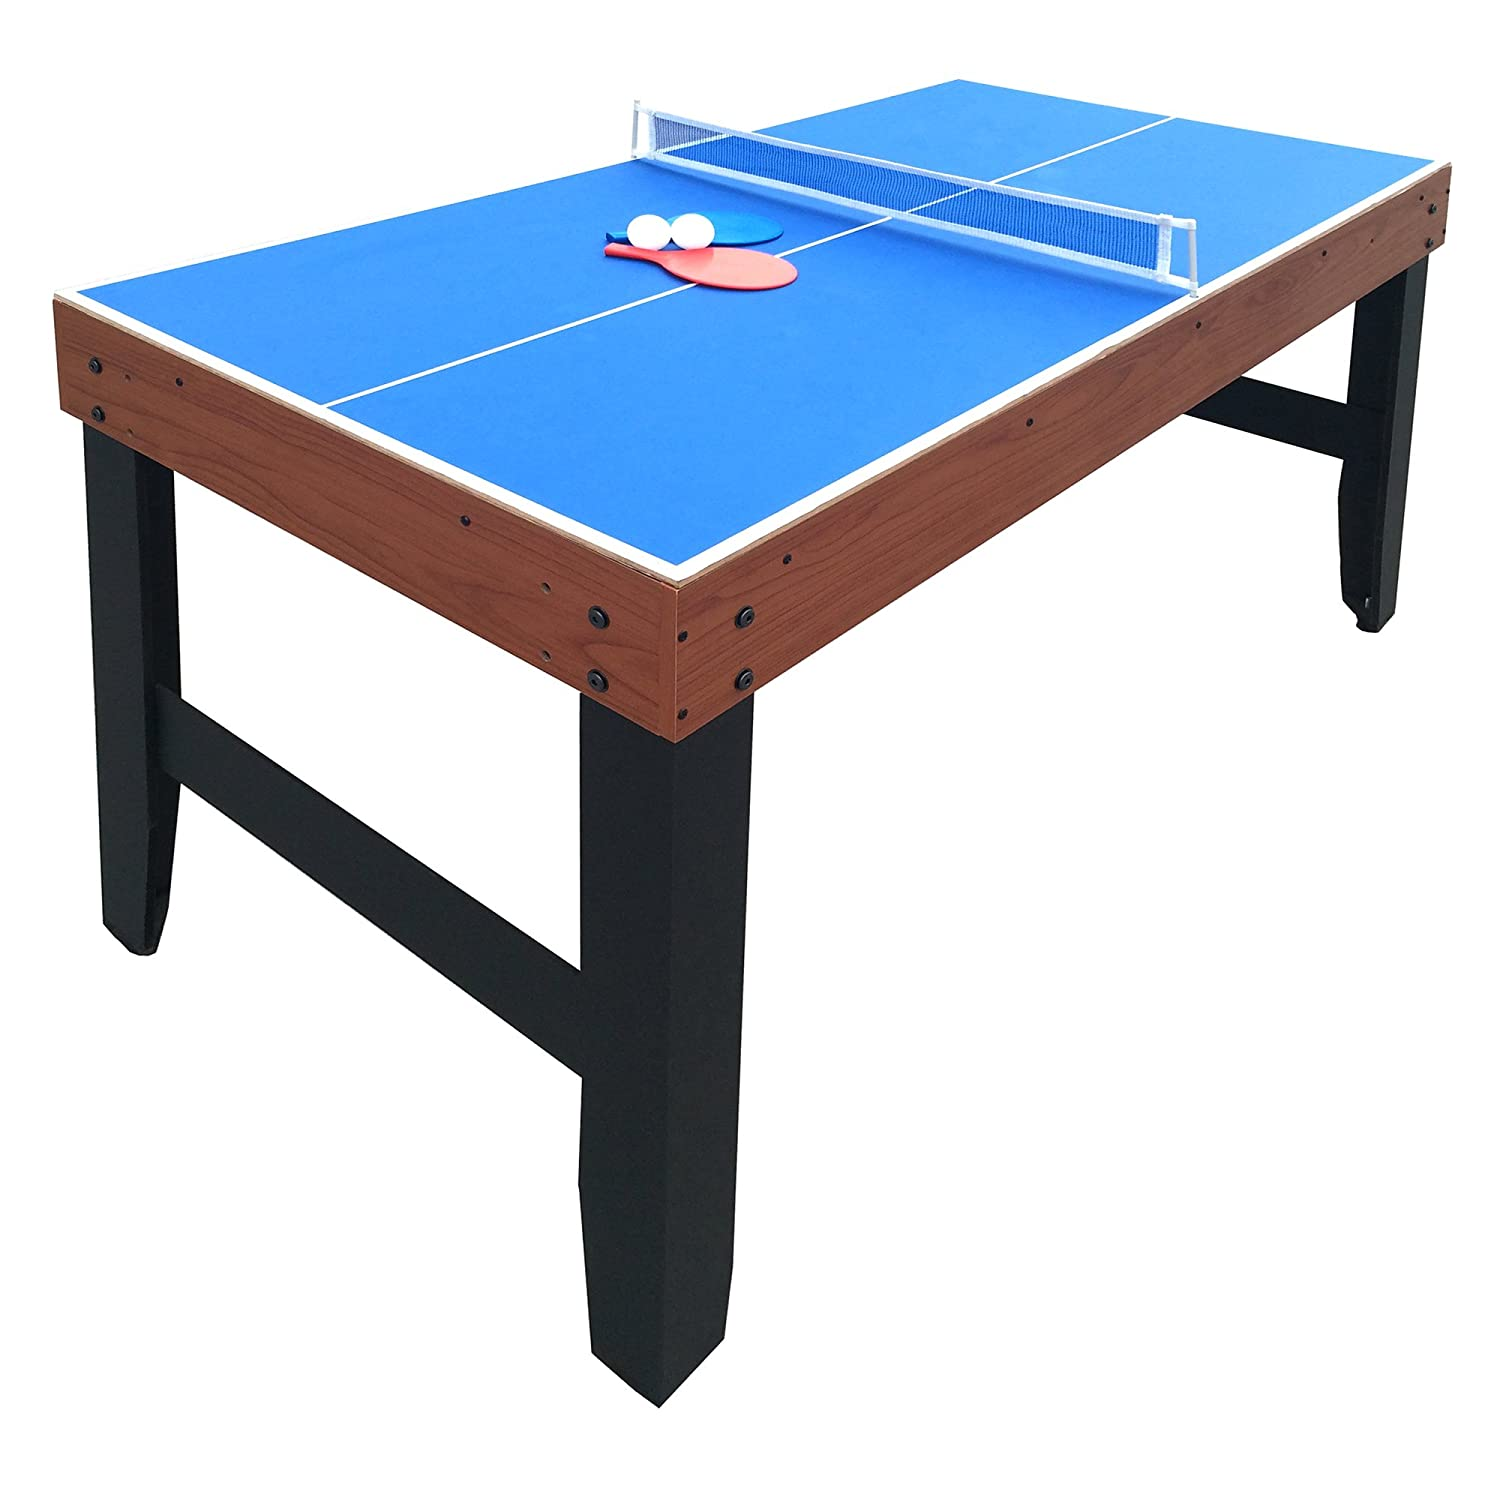 Amazon.com : Hathaway Accelerator 4 In 1 Multi Game Table With Basketball,  Air Hockey, Table Tennis And Dry Erase Board For Kids And Families : Sports  U0026 ...